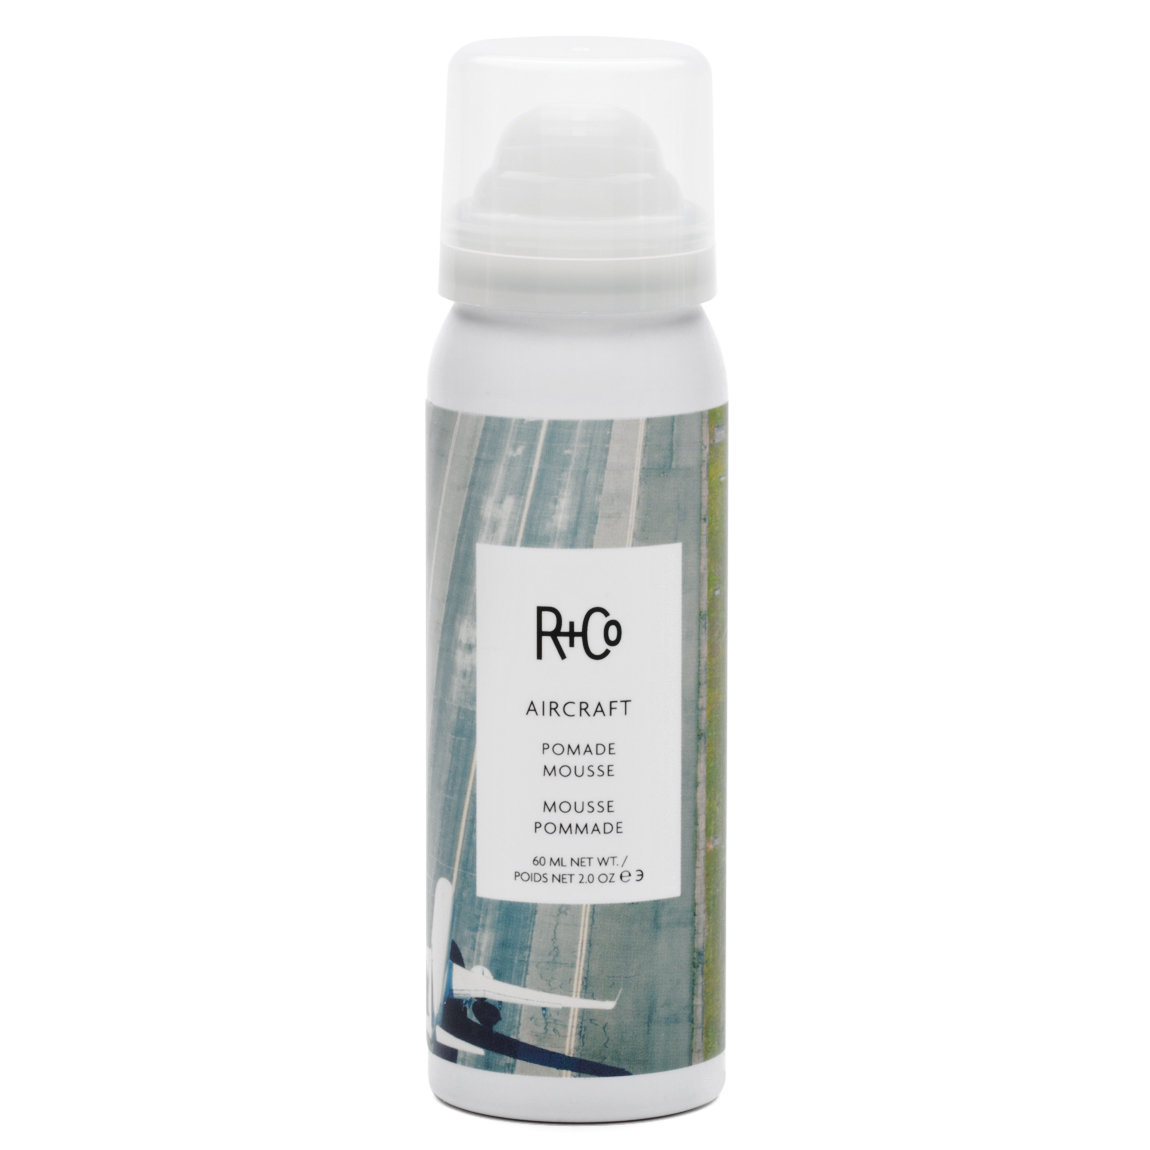 R+Co Aircraft Pomade Mousse  2 oz alternative view 1 - product swatch.